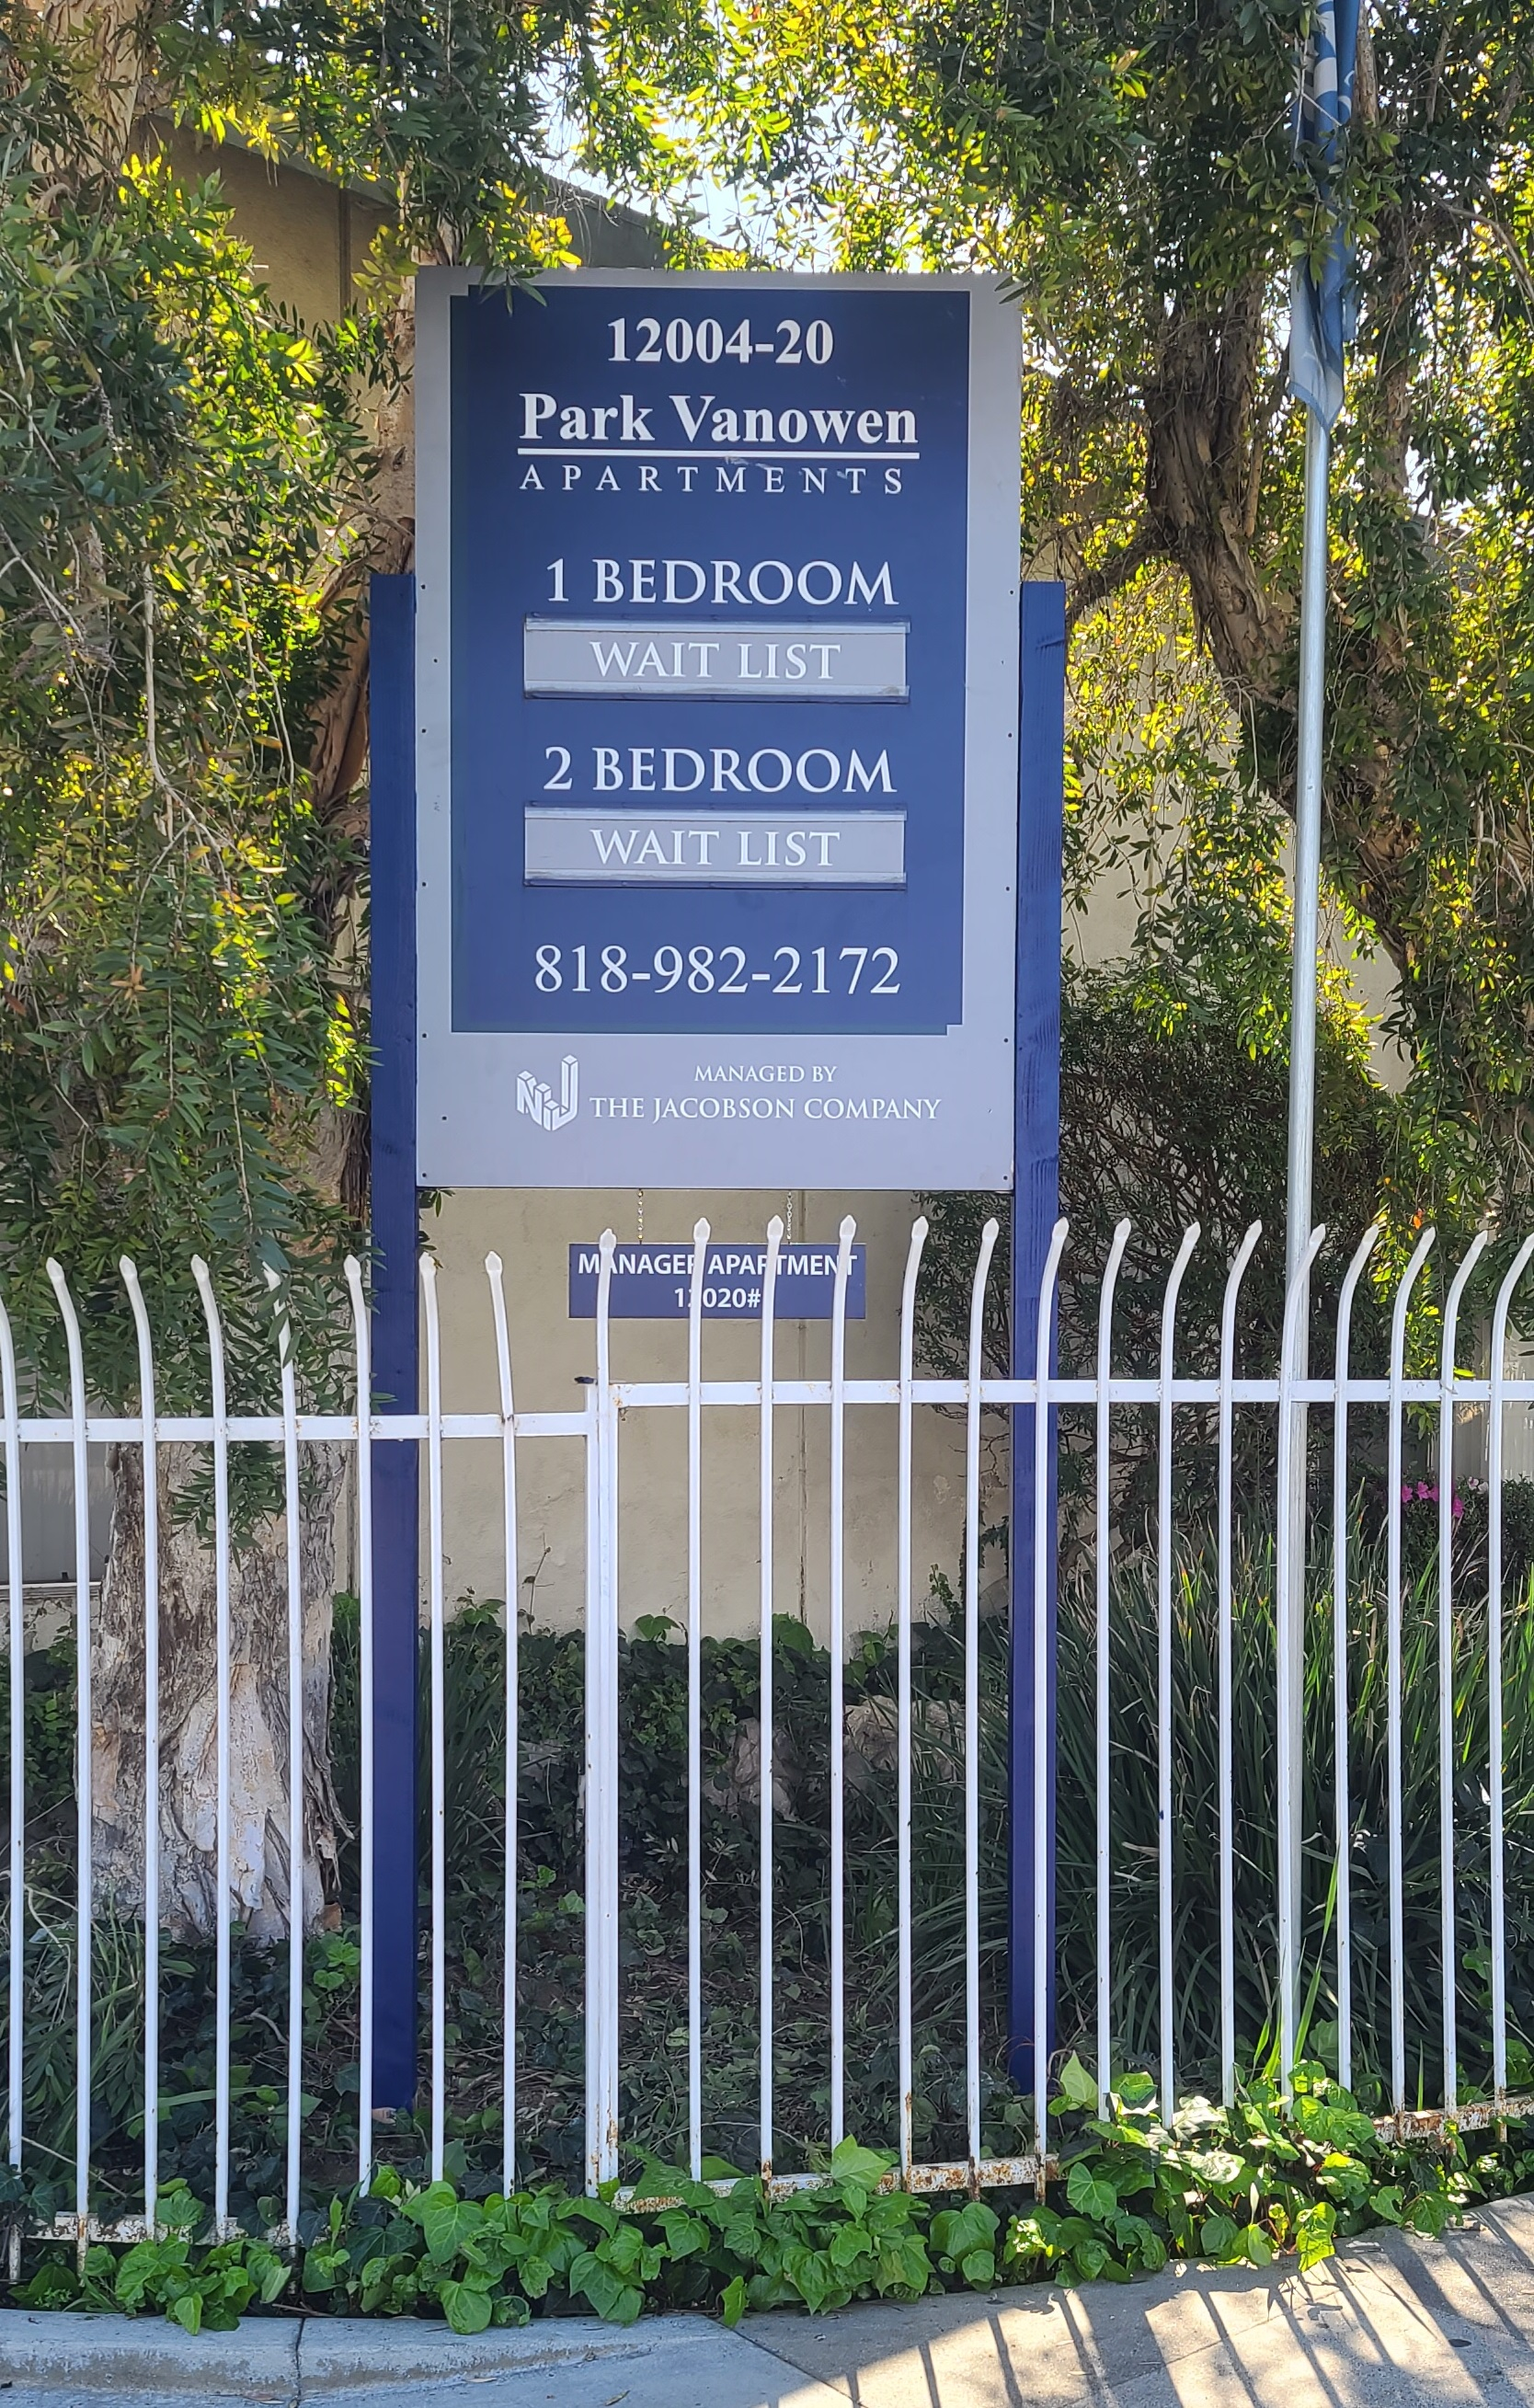 With this post and panel real estate sign Jacobson's North Hollywood Park Vanowen Apartments will be more visible and display info regarding unit availability.